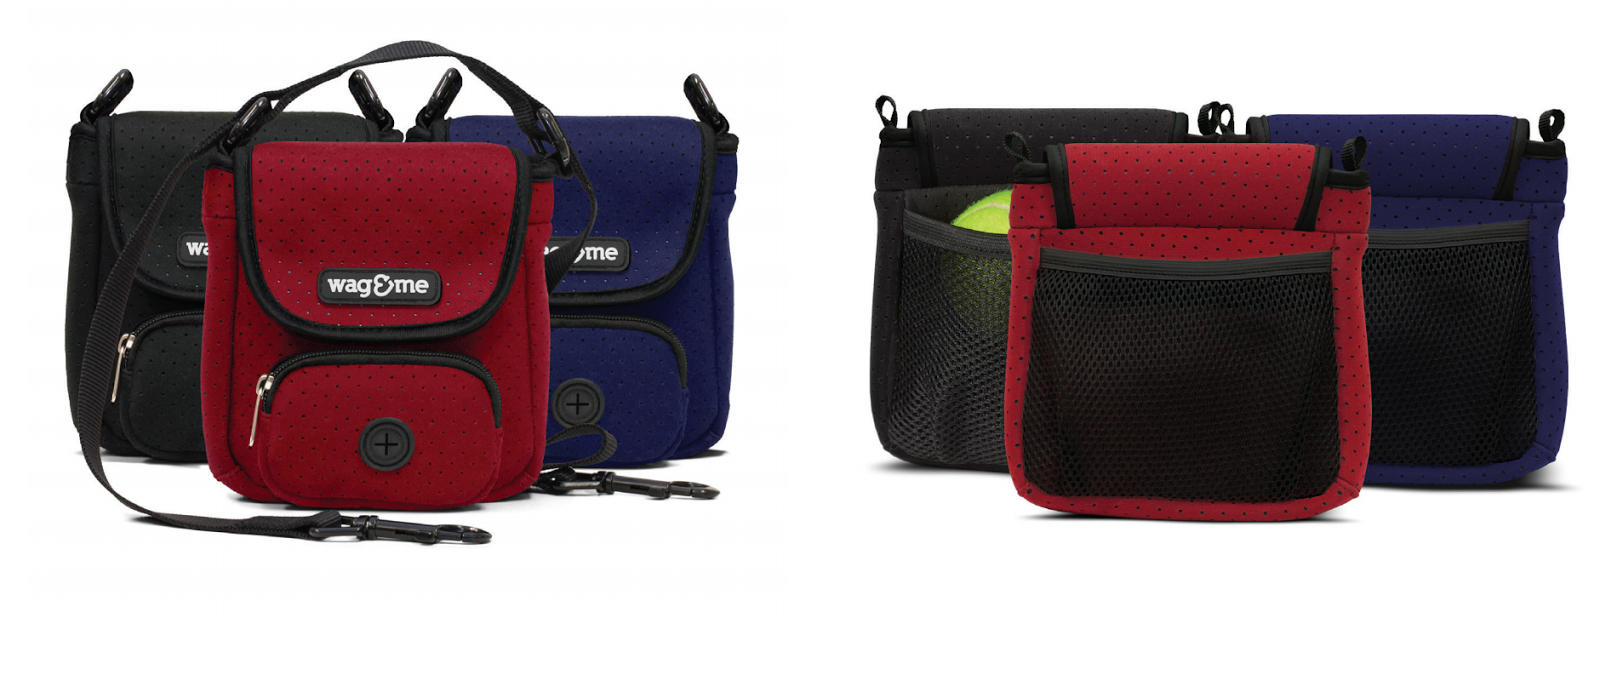 The Poochette dog walking pouches in black, red, blue seen from the front and back